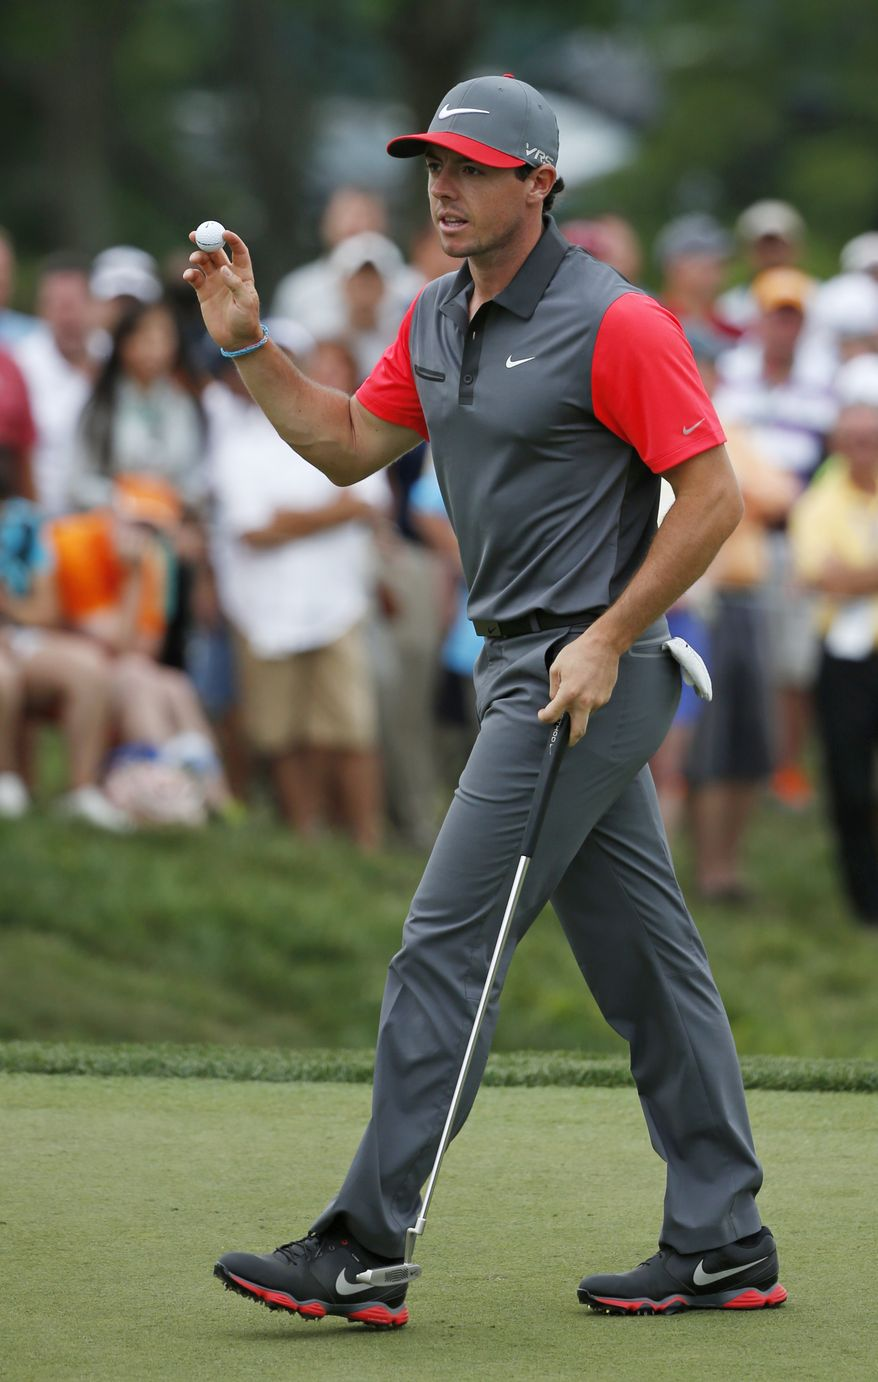 Rory McIlroy, of Northern Ireland, waves after making a birdie putt on the ninth hole during the first round of the PGA Championship golf tournament at Valhalla Golf Club on Thursday, Aug. 7, 2014, in Louisville, Ky. (AP Photo/Mike Groll)